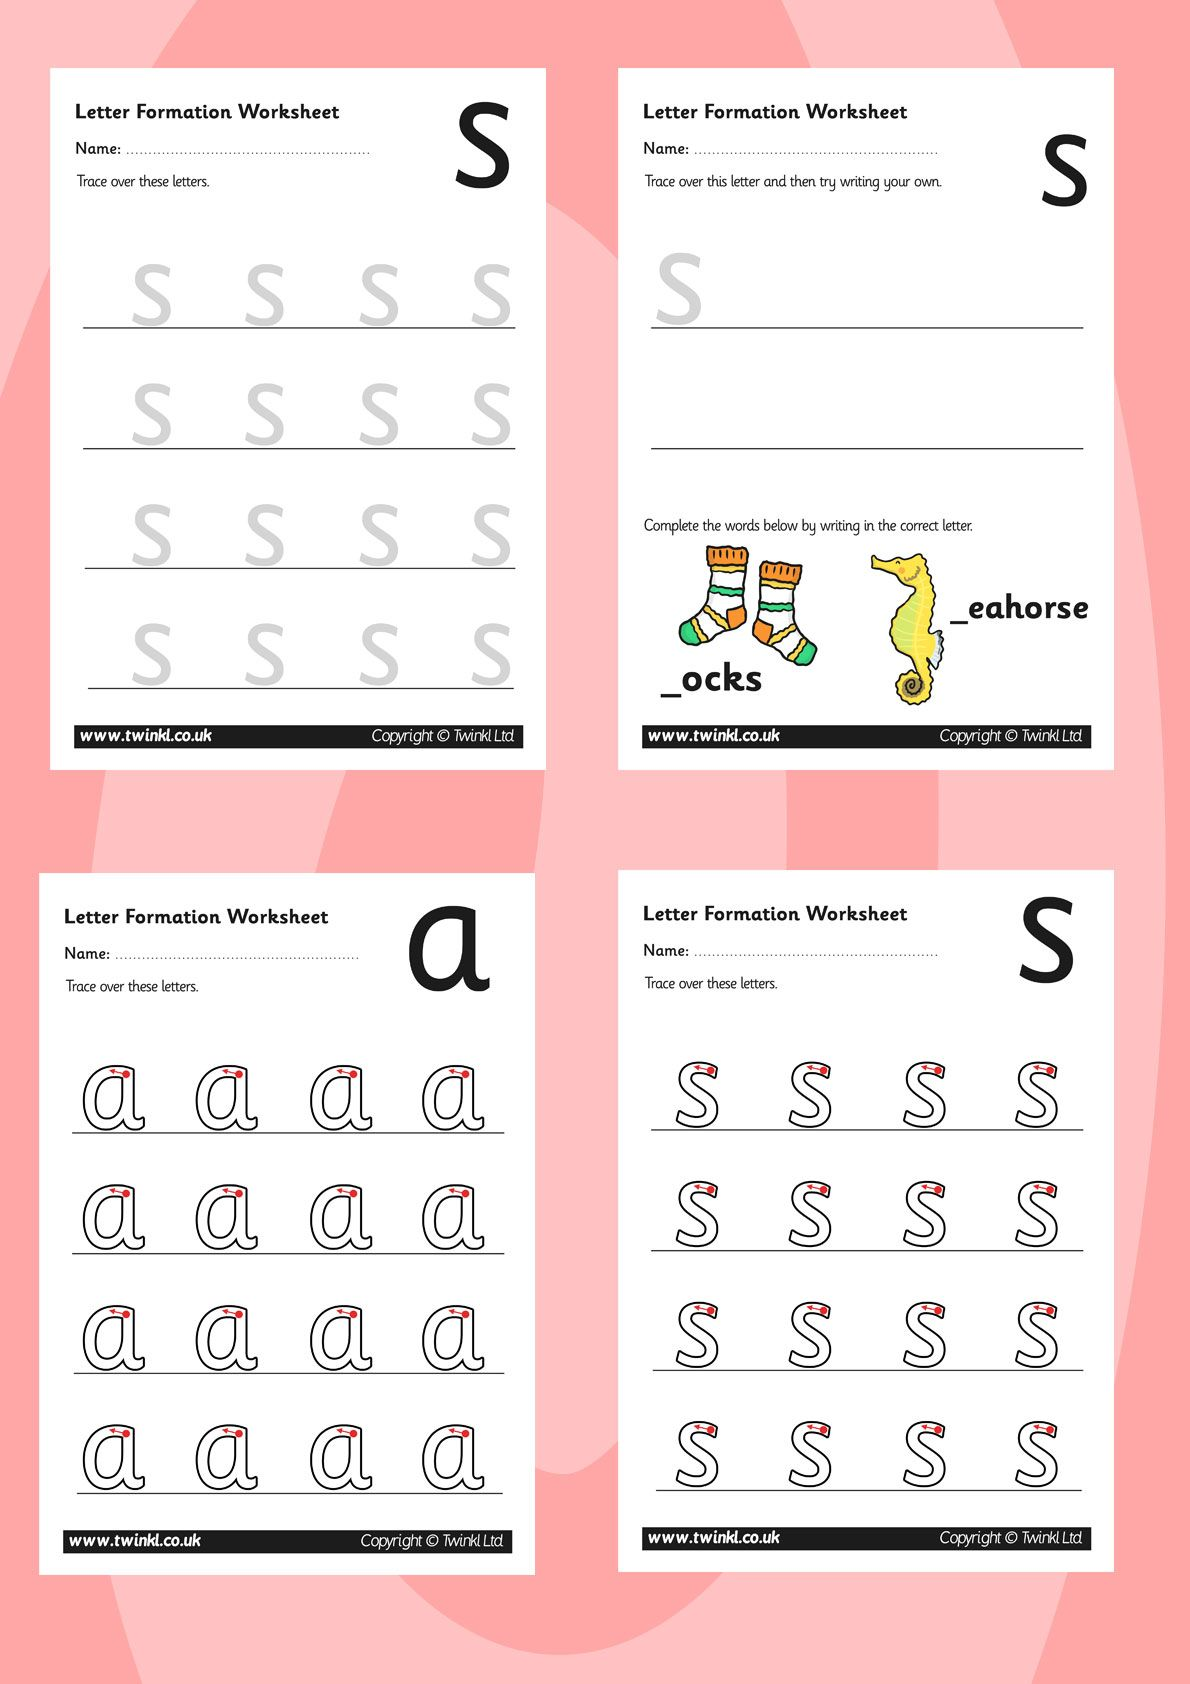 Twinkl Resources Gt Gt Phase 2 Letter Formation Worksheets Gt Gt Printable Resources For Primary Eyfs